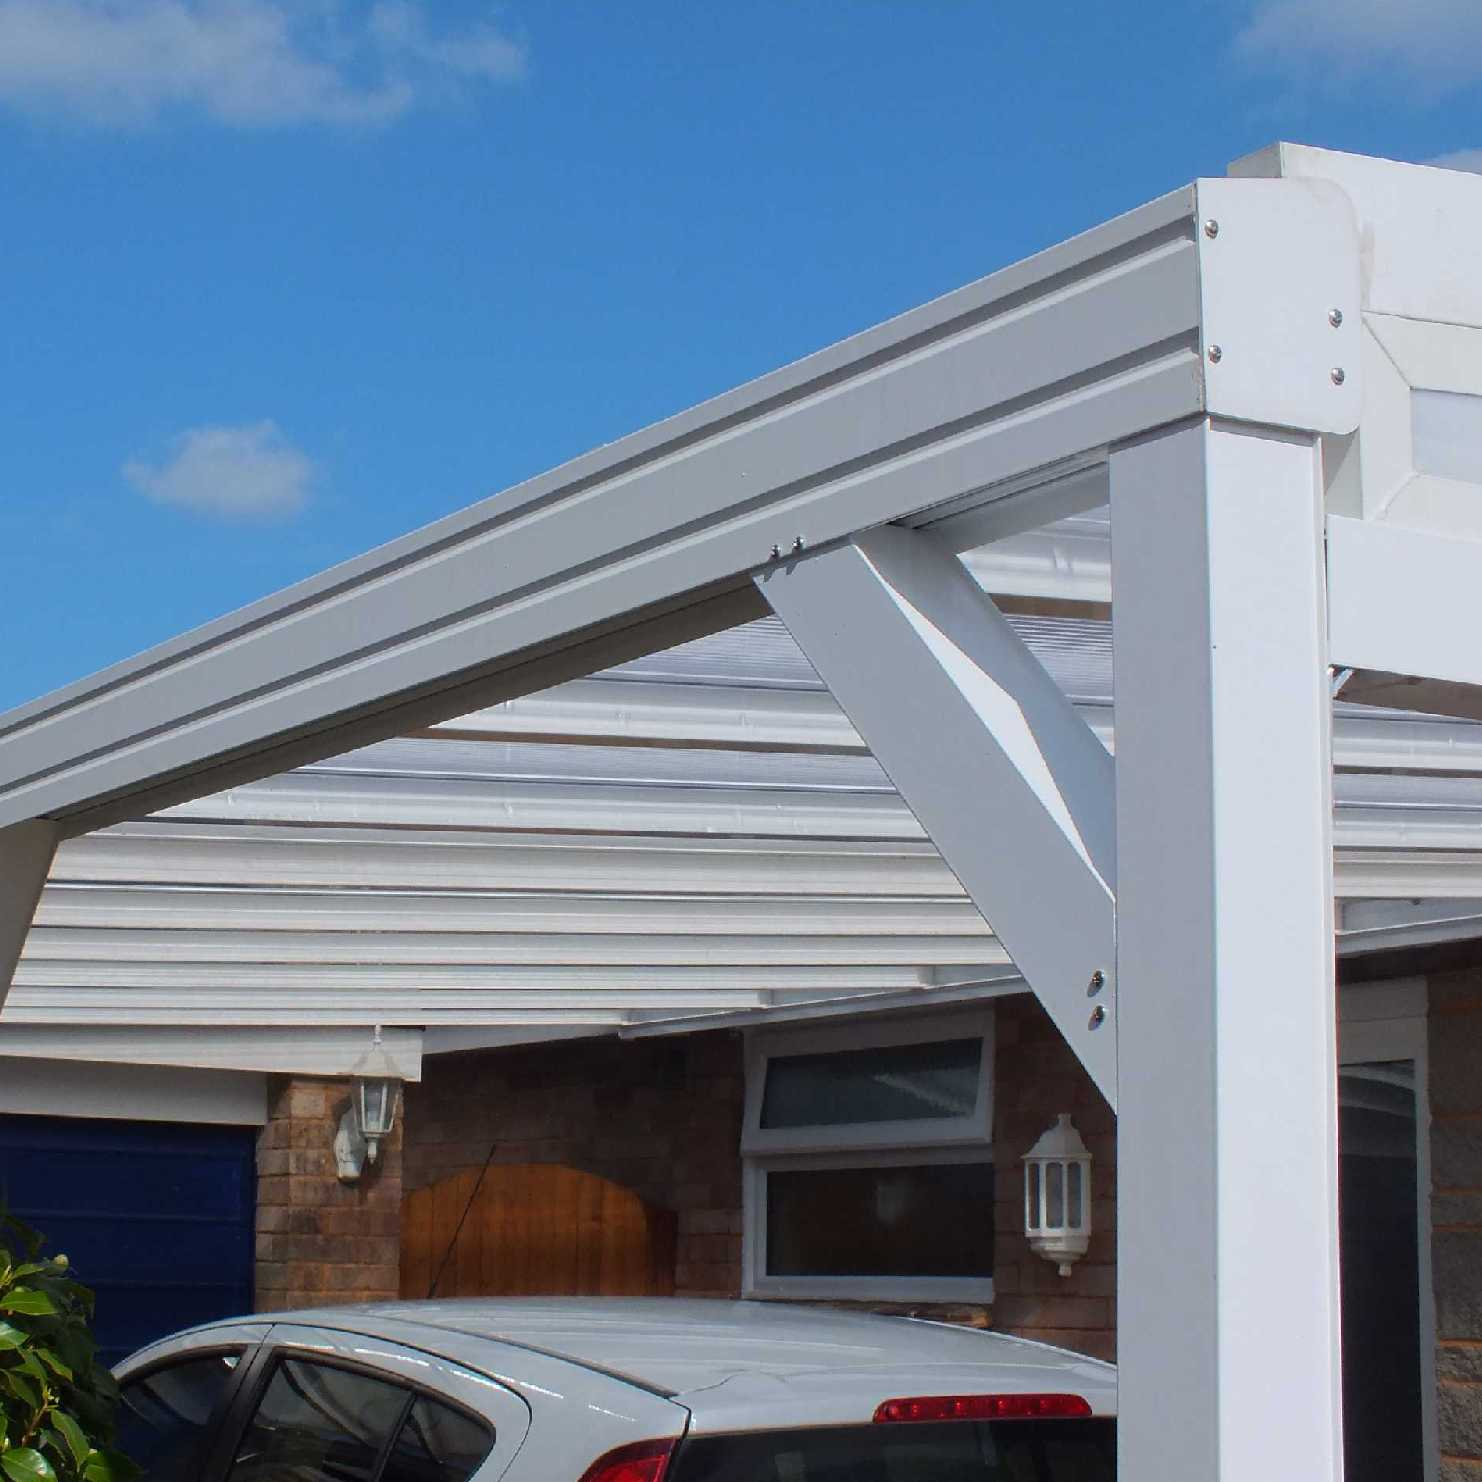 Buy Omega Smart White Lean-To Canopy with 16mm Polycarbonate Glazing - 9.9m (W) x 3.5m (P), (5) Supporting Posts online today